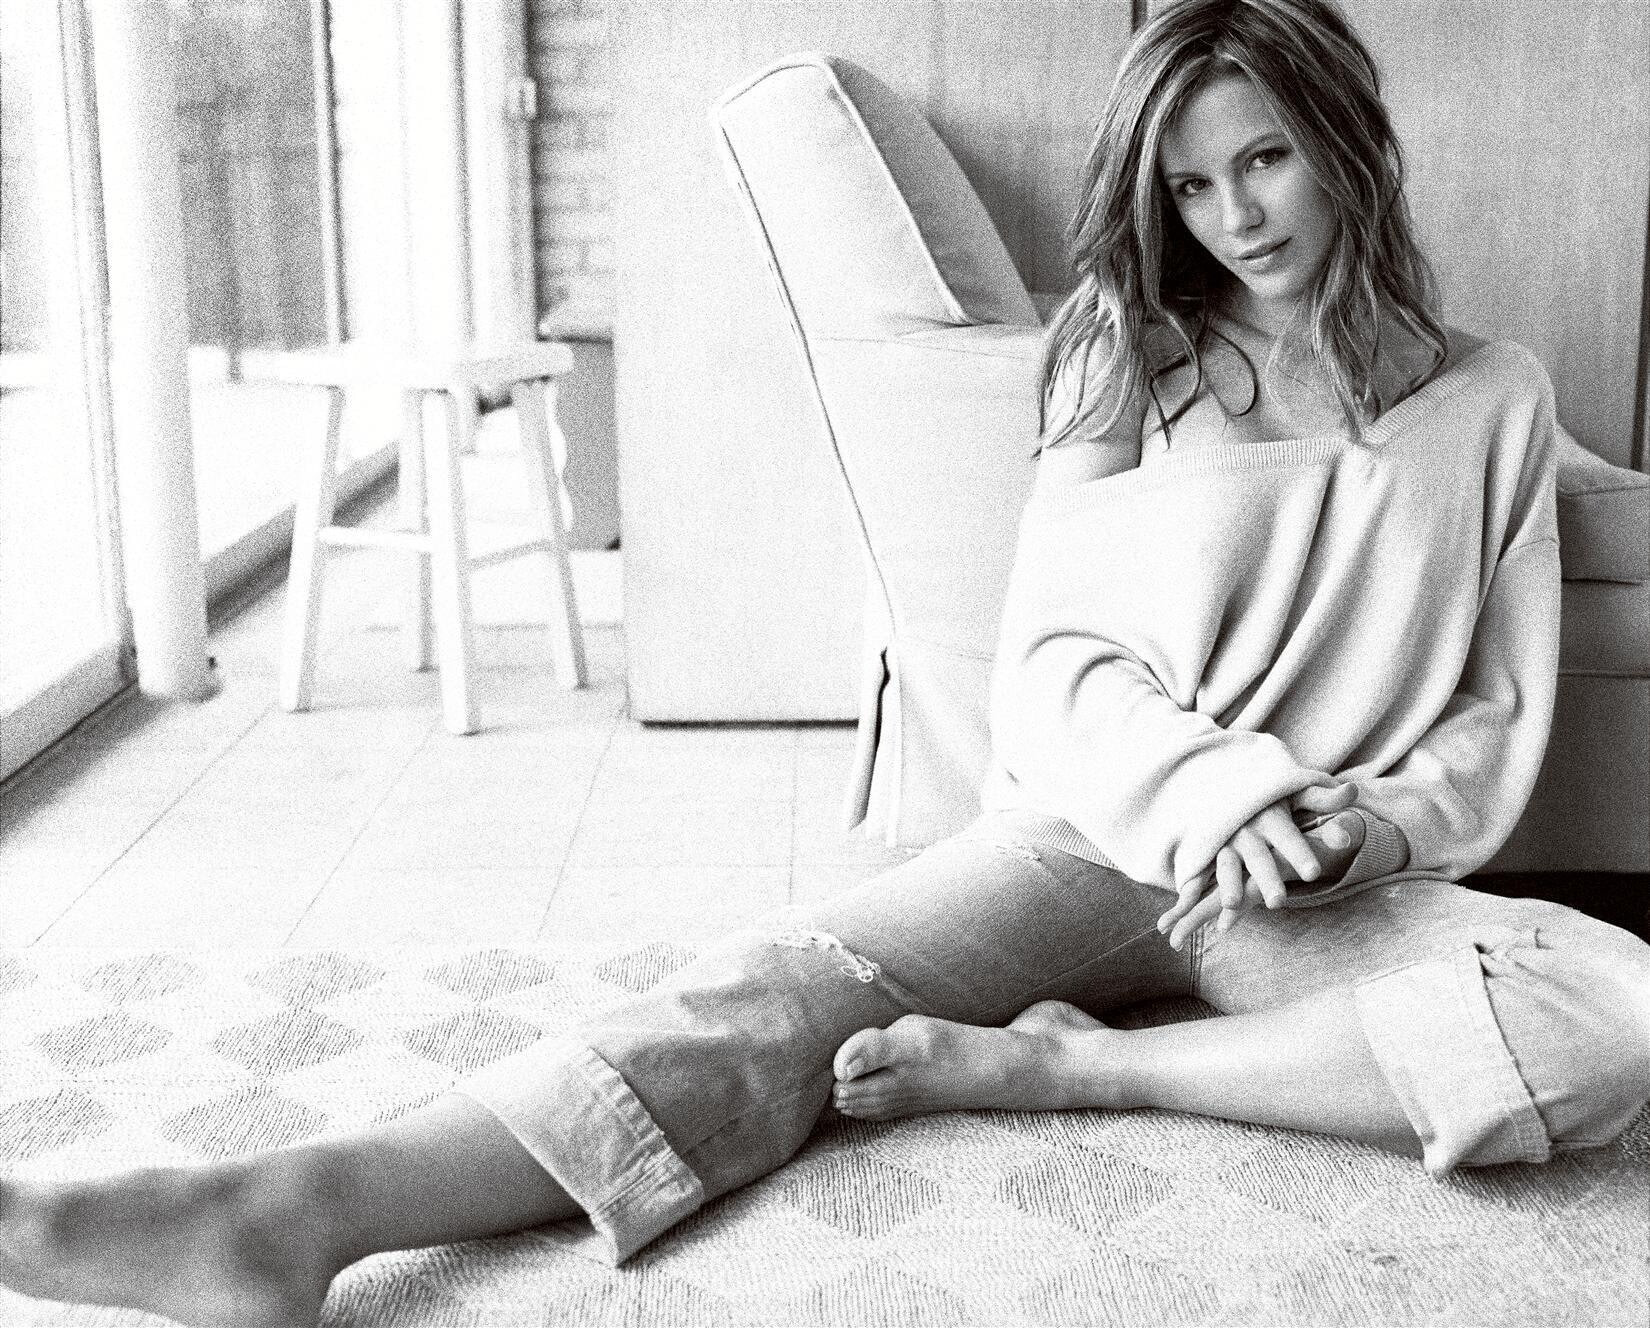 Kate Beckinsale Sexy fappenings.com 1